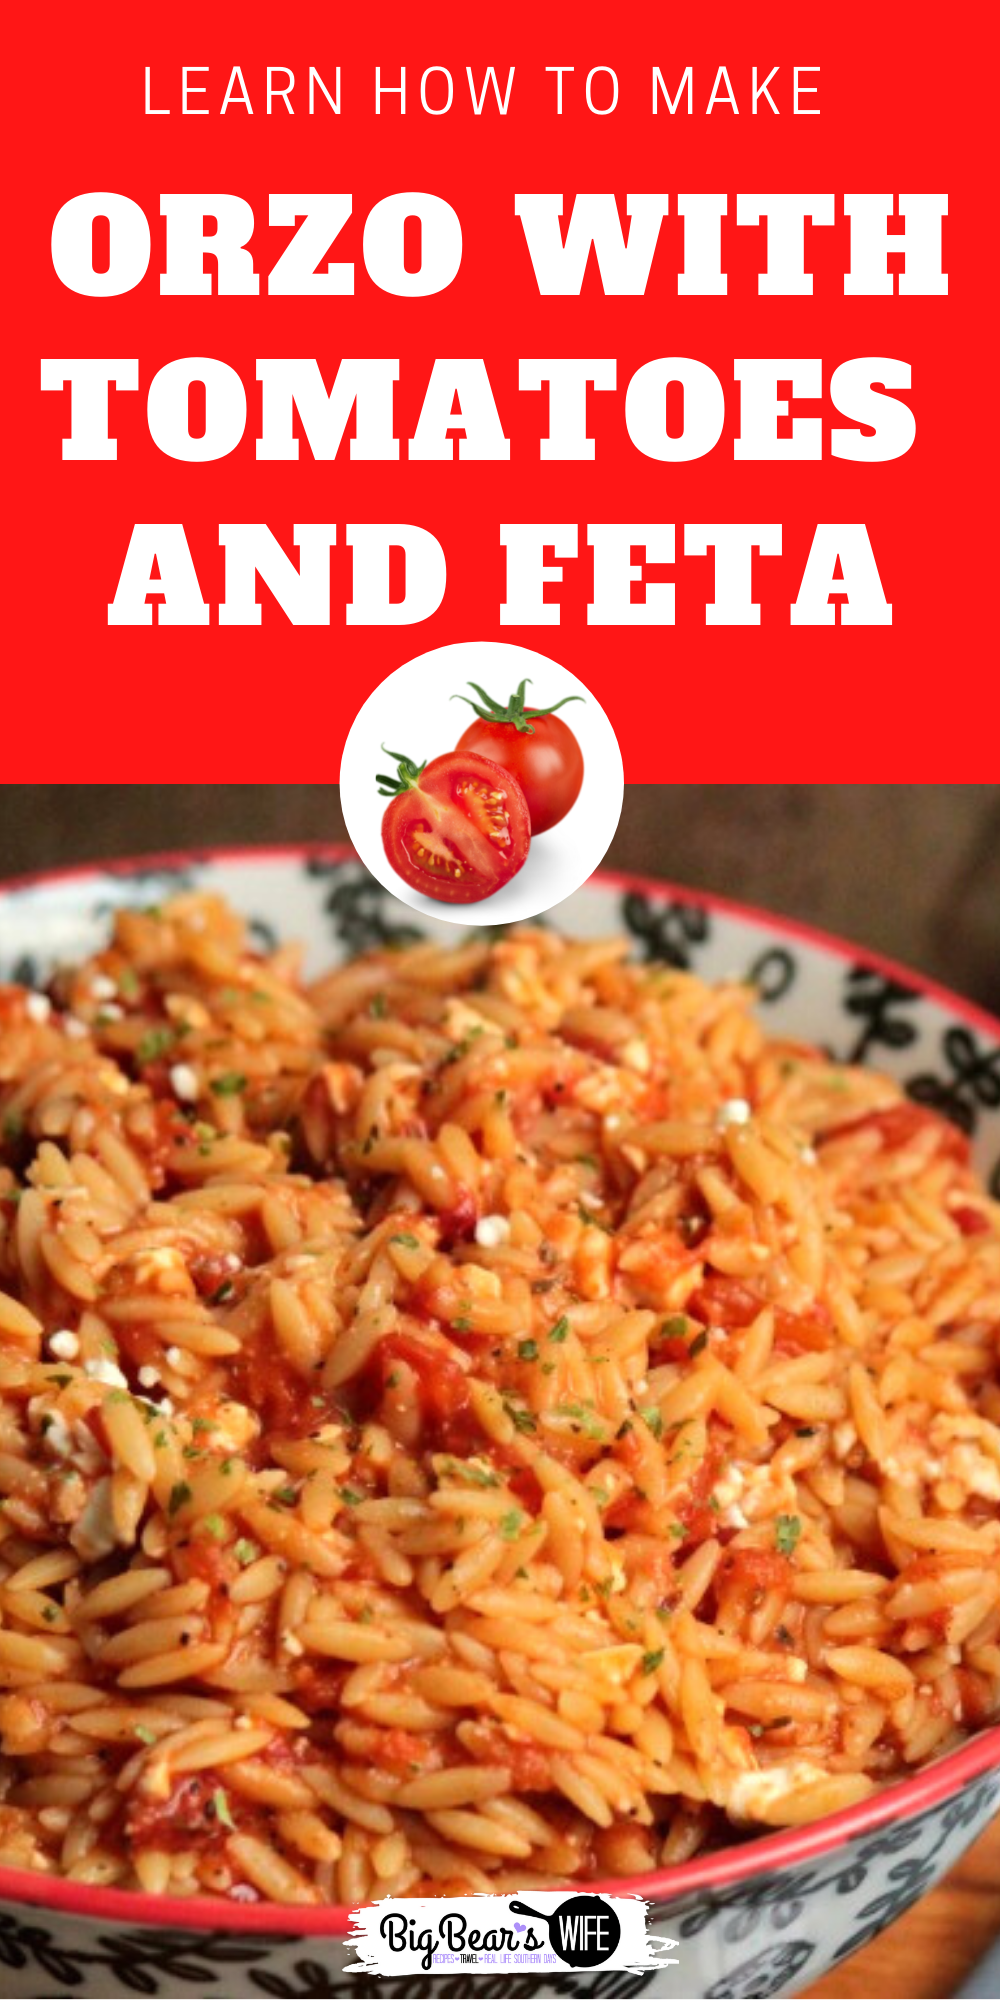 Orzo with Tomatoes and Feta is and would make a great main dish or serve perfectly as a side dish! Thecrushed red pepper flakes make it a little spicy so if you're not too keen on spice you might want to leave those out. via @bigbearswife